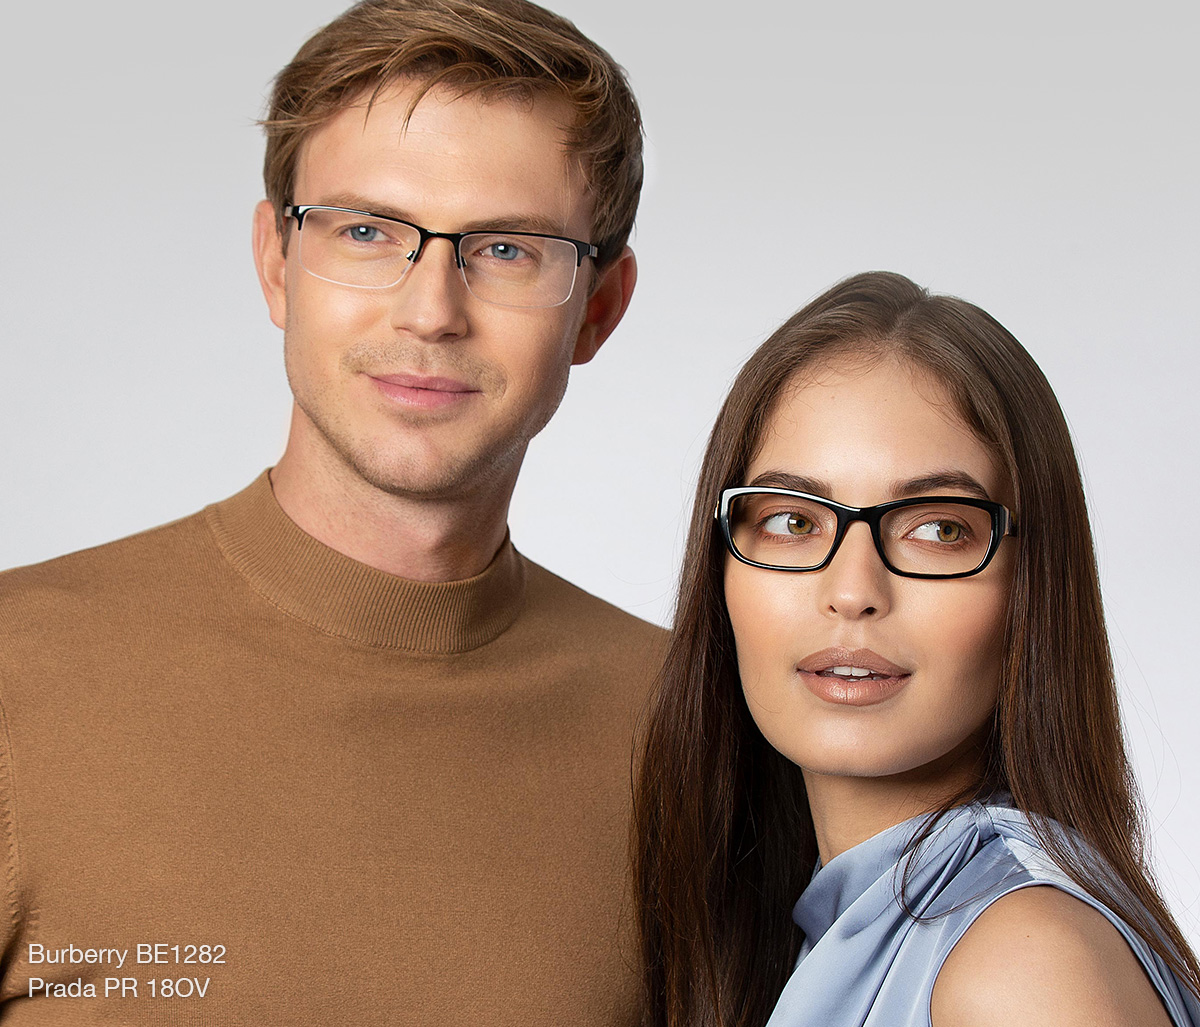 A man with light brown hair wearing a brown sweater and Burberry BE1282 glasses standing next to a brunette woman wearing a light blue top and Prada PR 18OV glasses